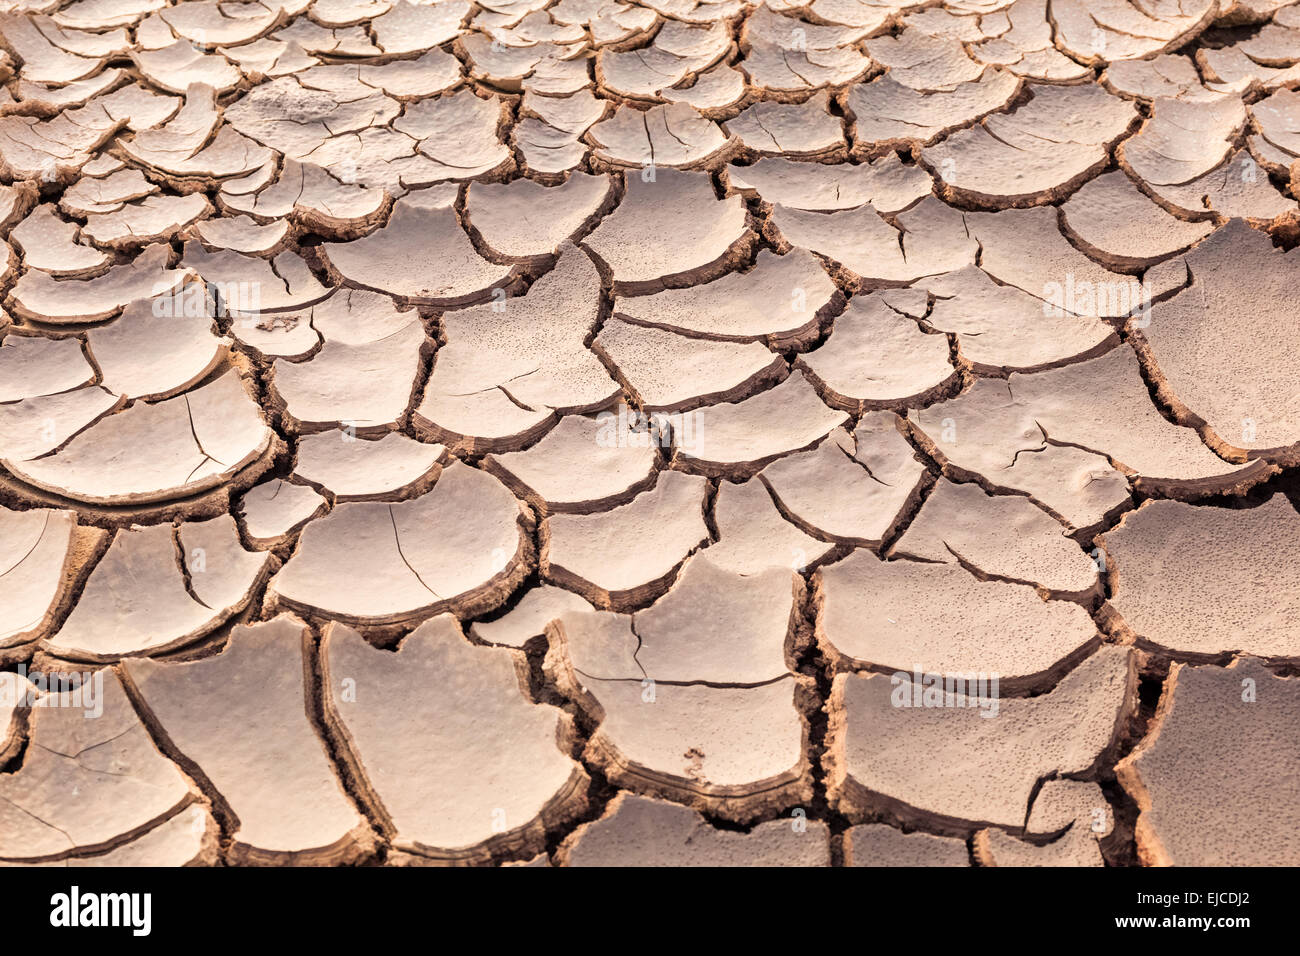 the ground parched and cracked - Stock Image